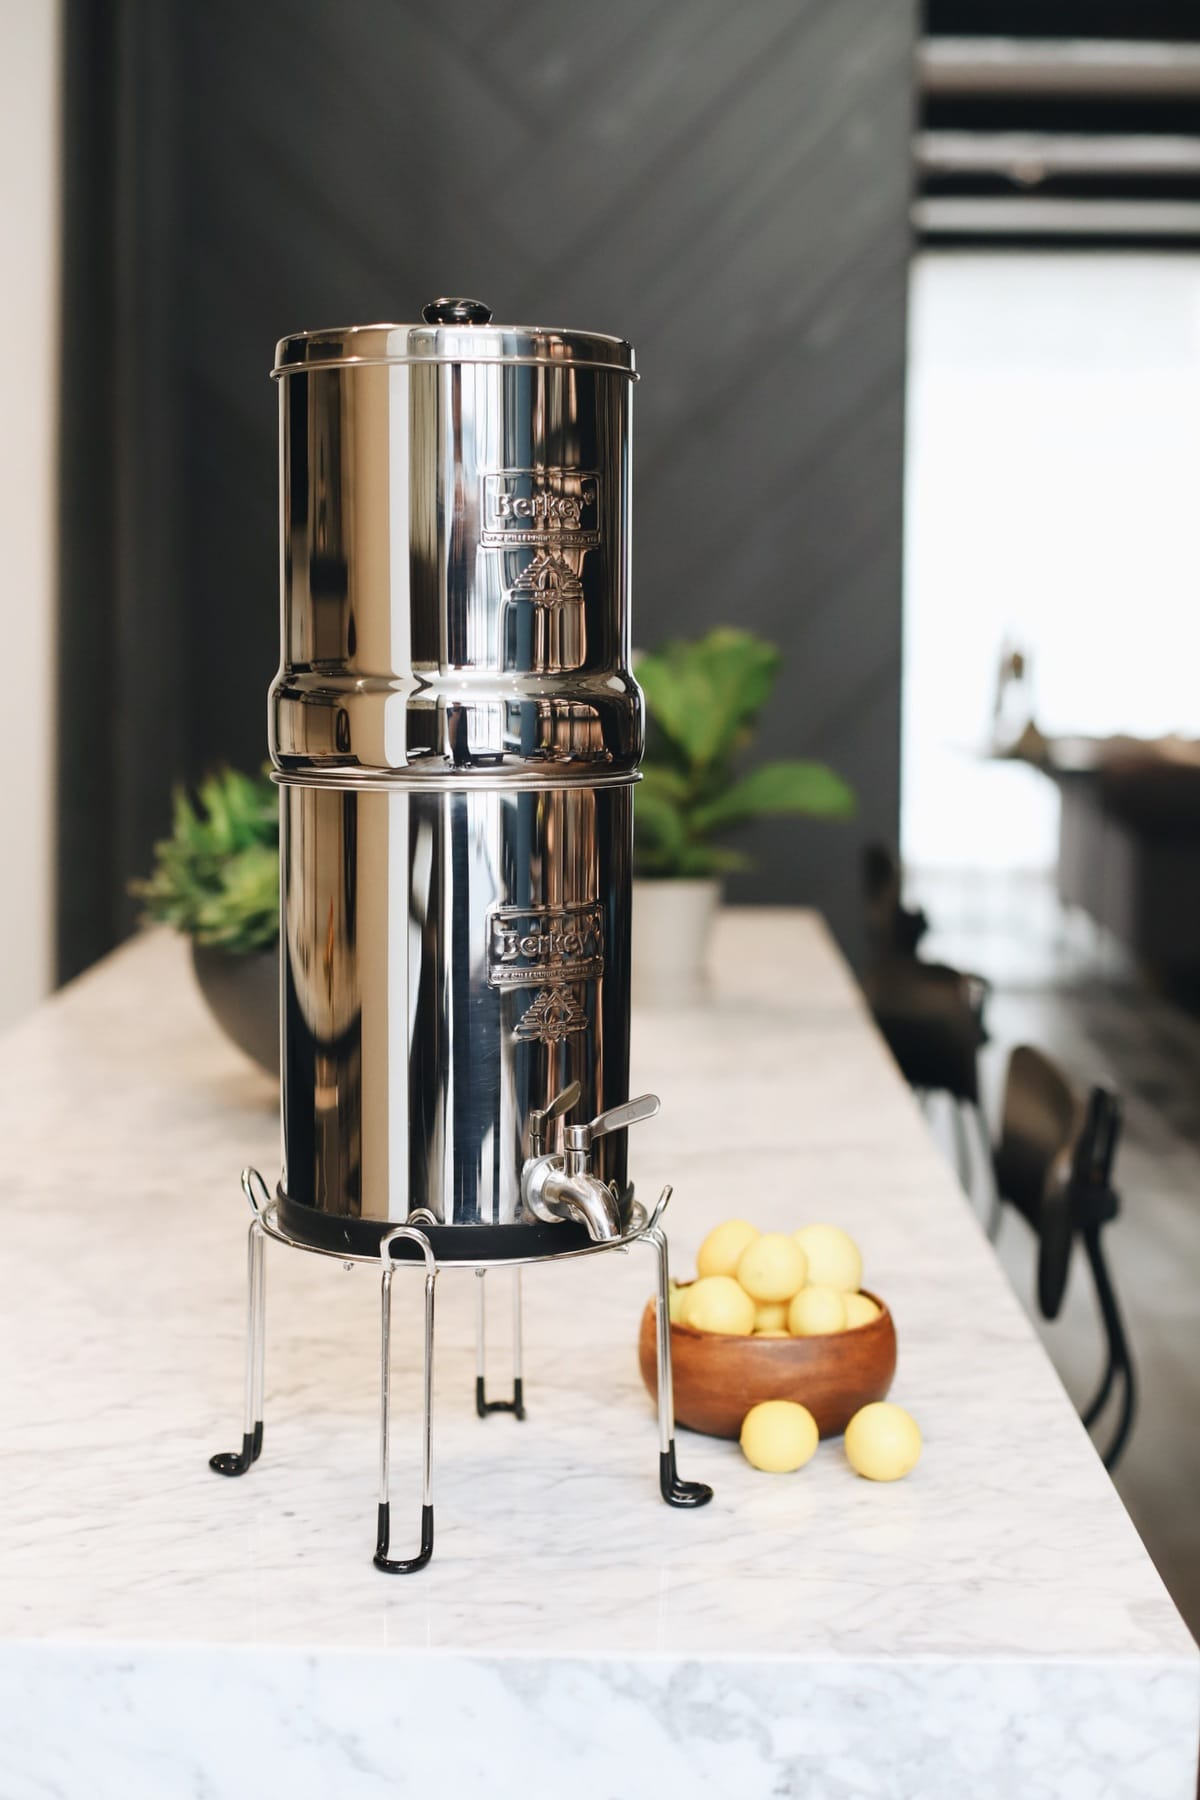 The Travel Berkey with Stainless Steel Spigot